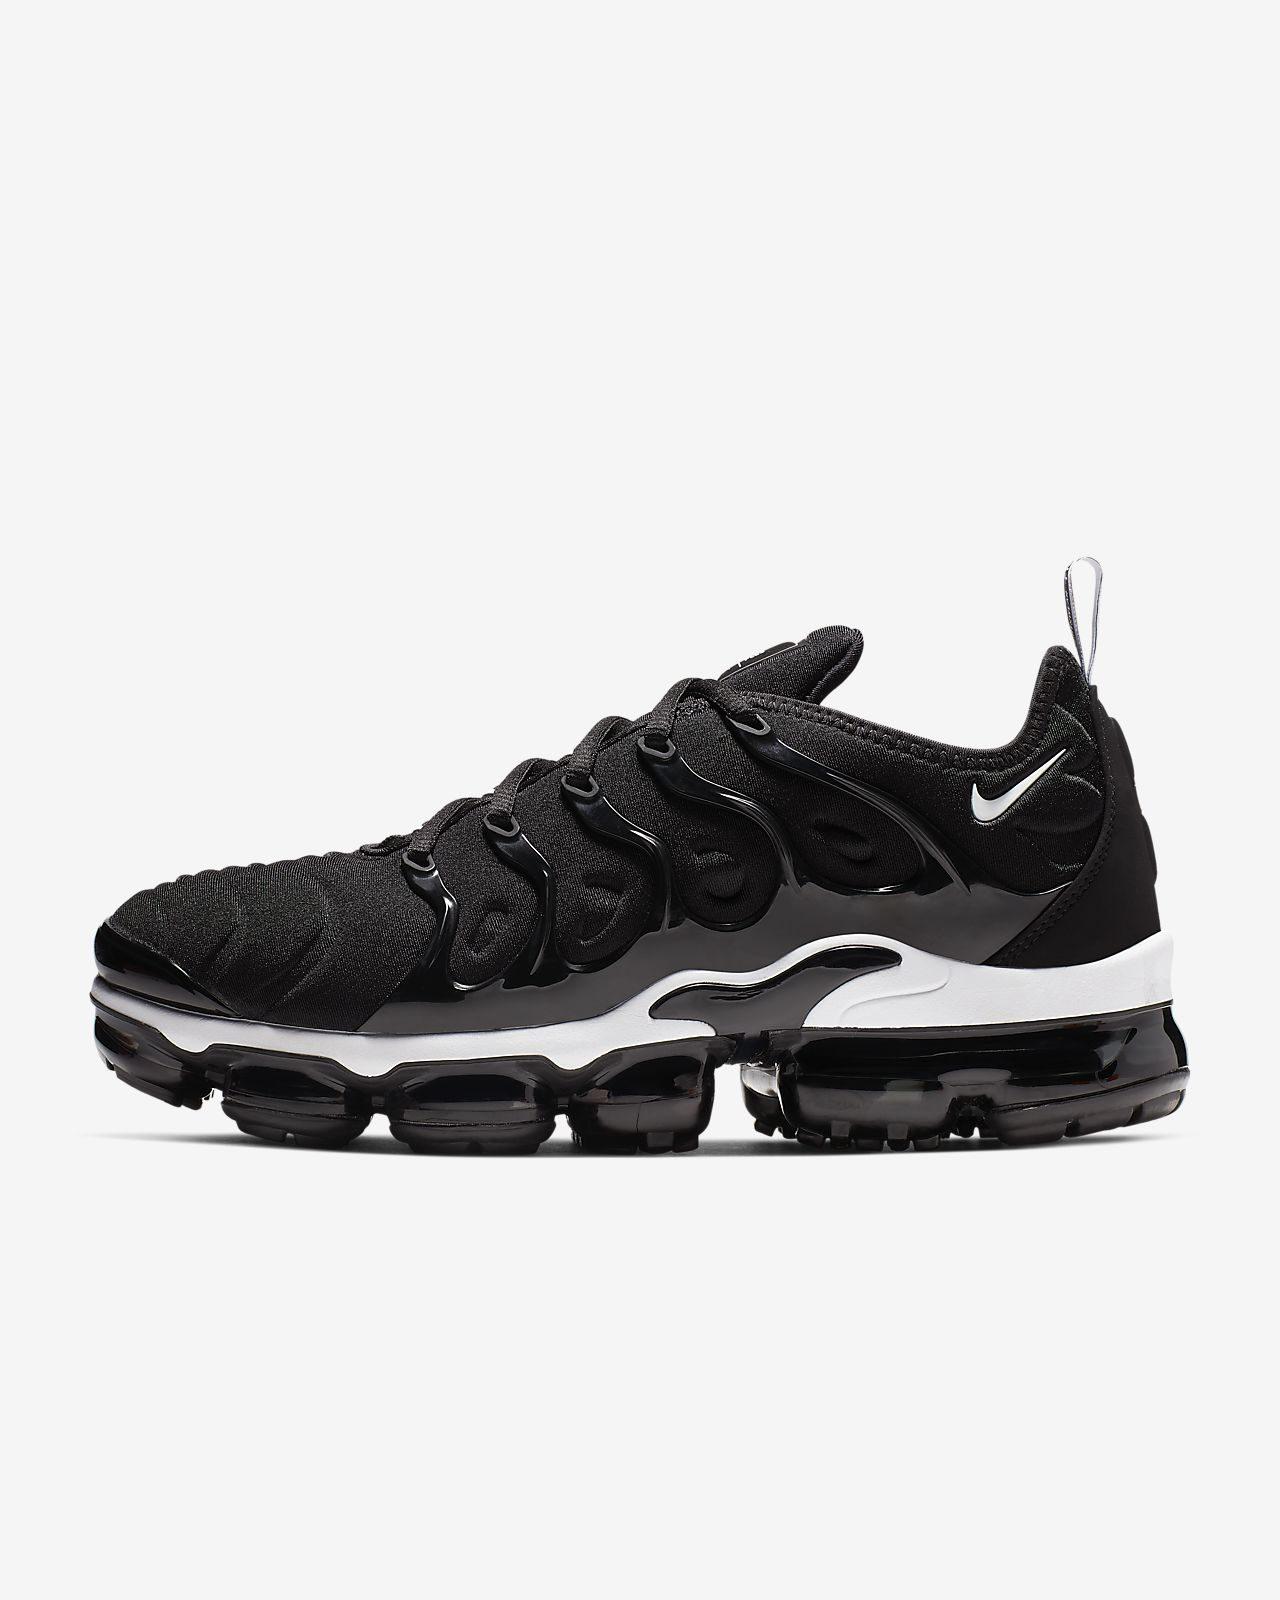 fbad934a805 Nike Air VaporMax Plus Men s Shoe. Nike.com GB